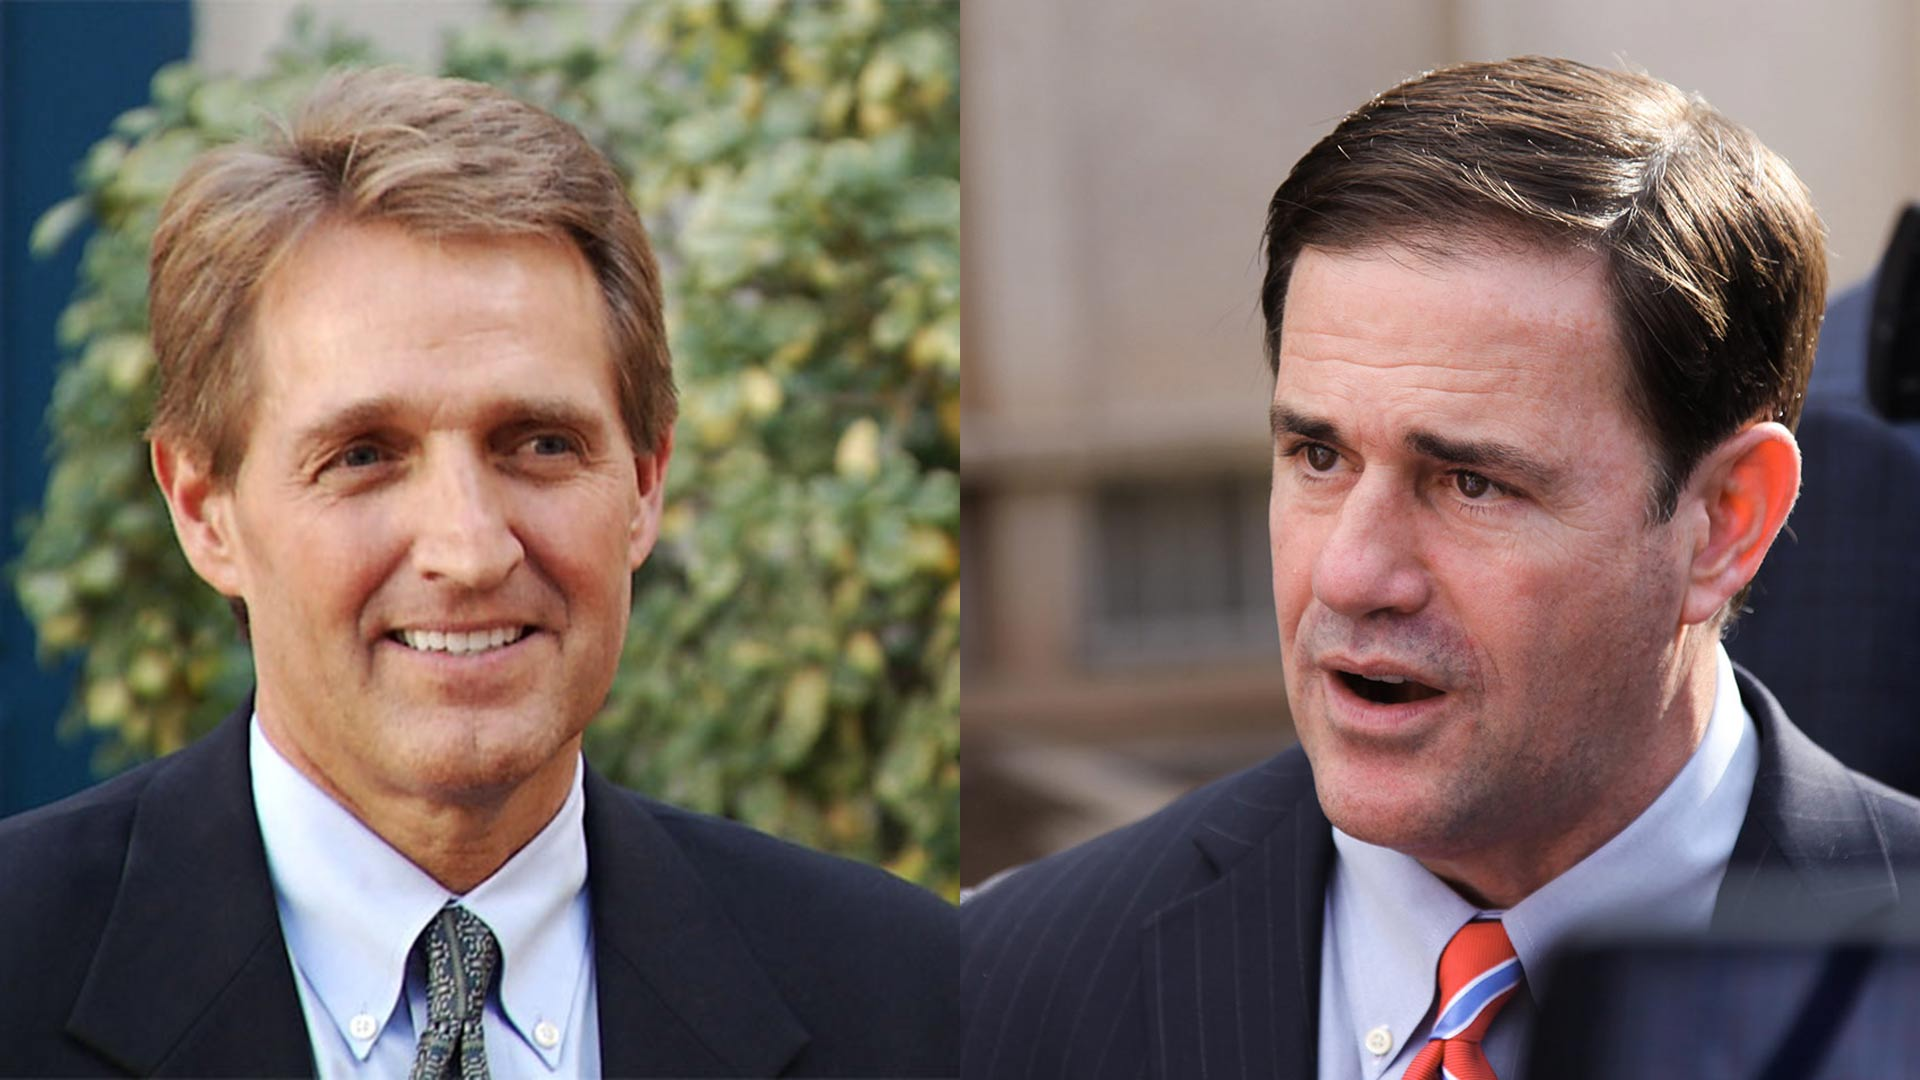 U.S. Sen. Jeff Flake, left, and Arizona Gov. Doug Ducey